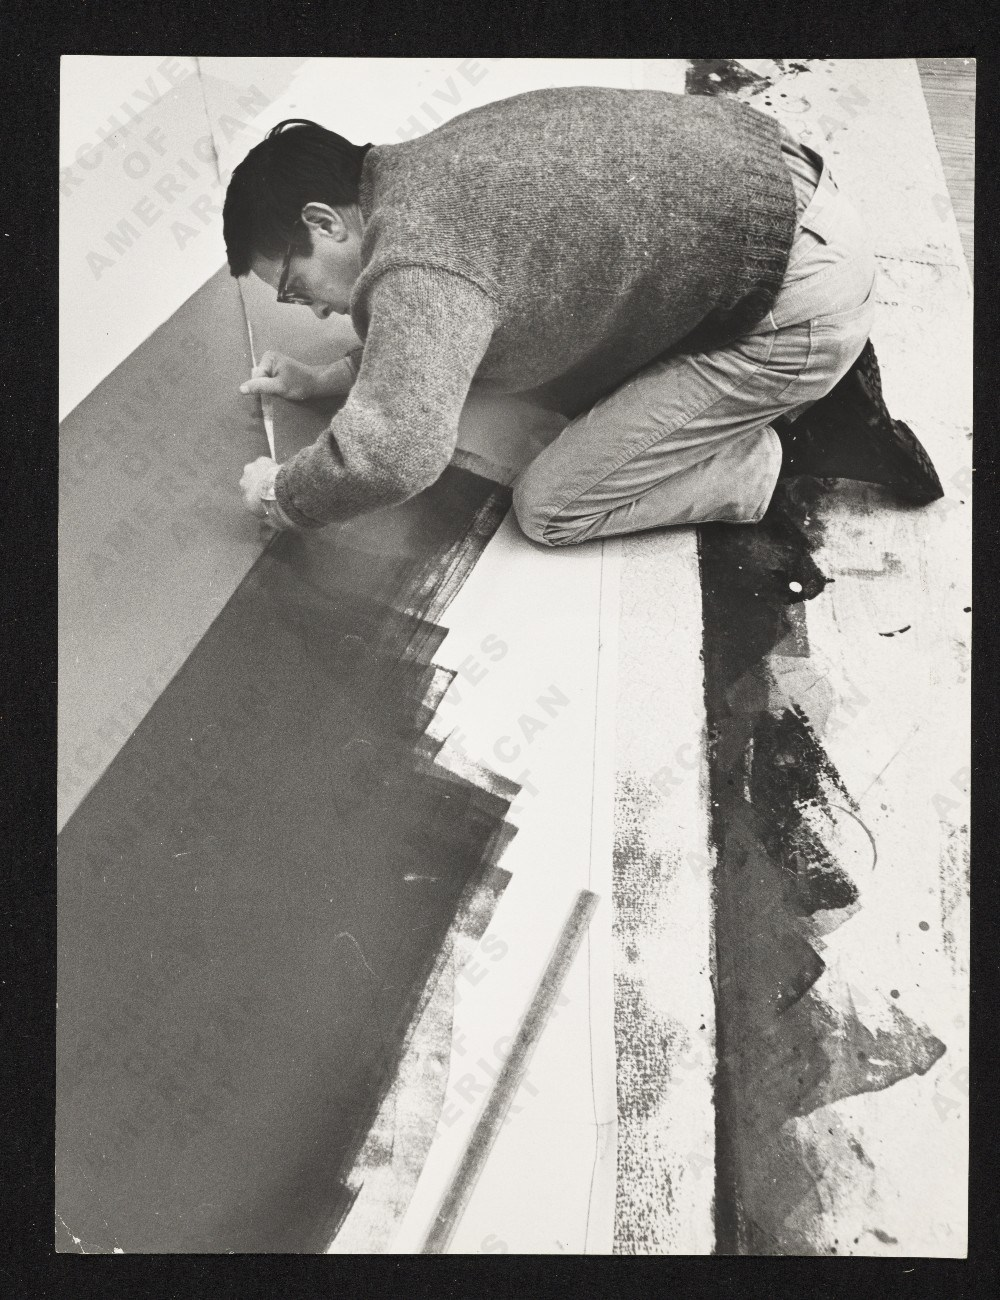 Noland painting in 1968. Image from the Smithsonian Archives of American Art.